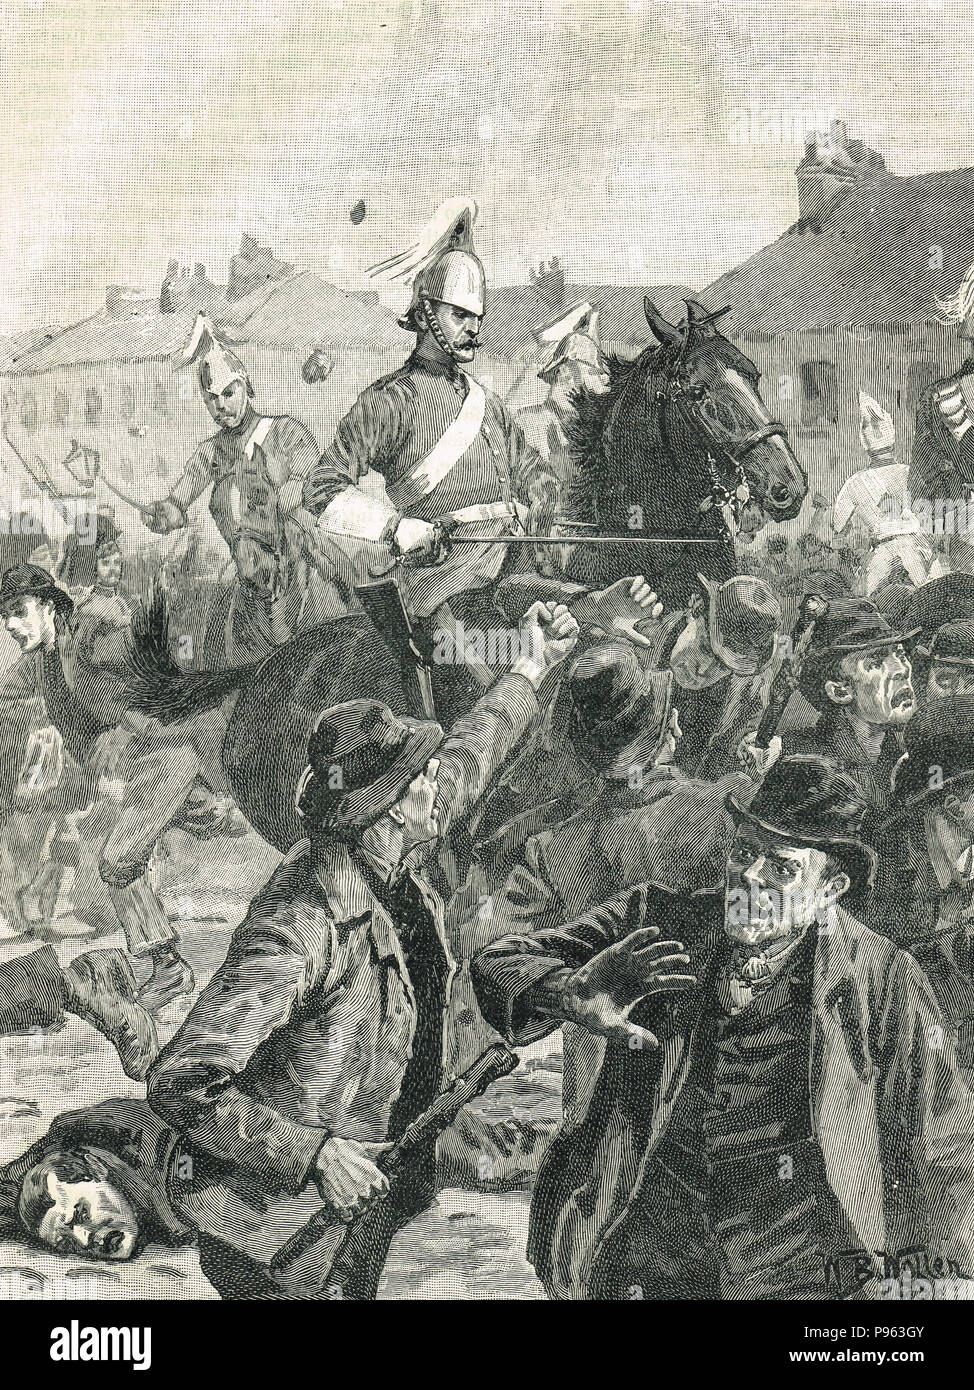 Belfast riots August 1872. The 4th Dragoon Guards, and the 78th Highlanders, separating Catholic and Protestant communities during sectarian violence - Stock Image